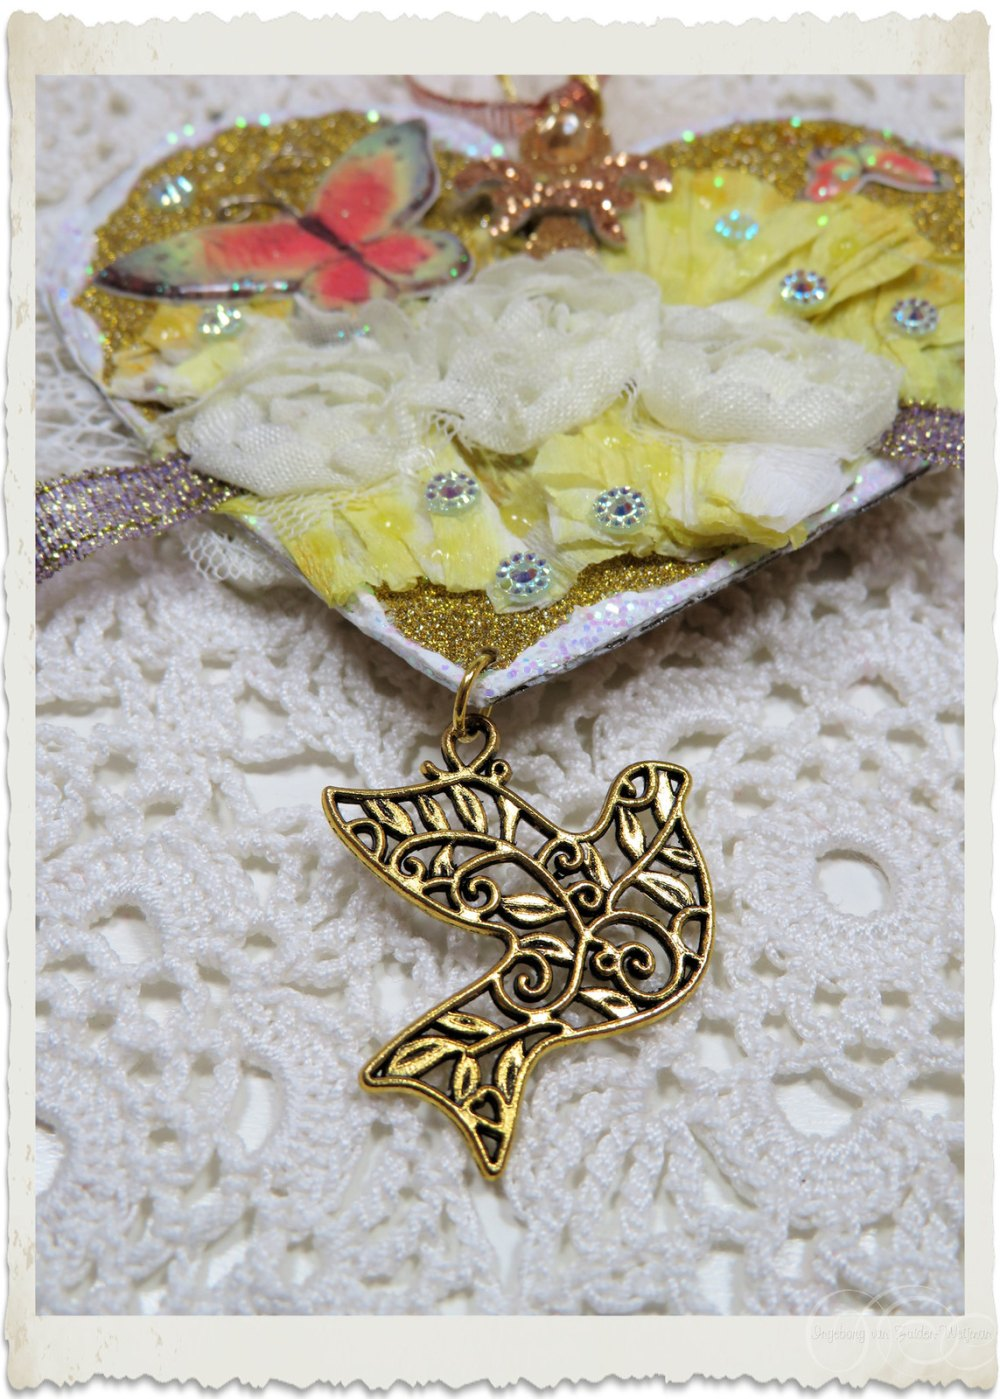 Pretty gold dove charm on handmade art project